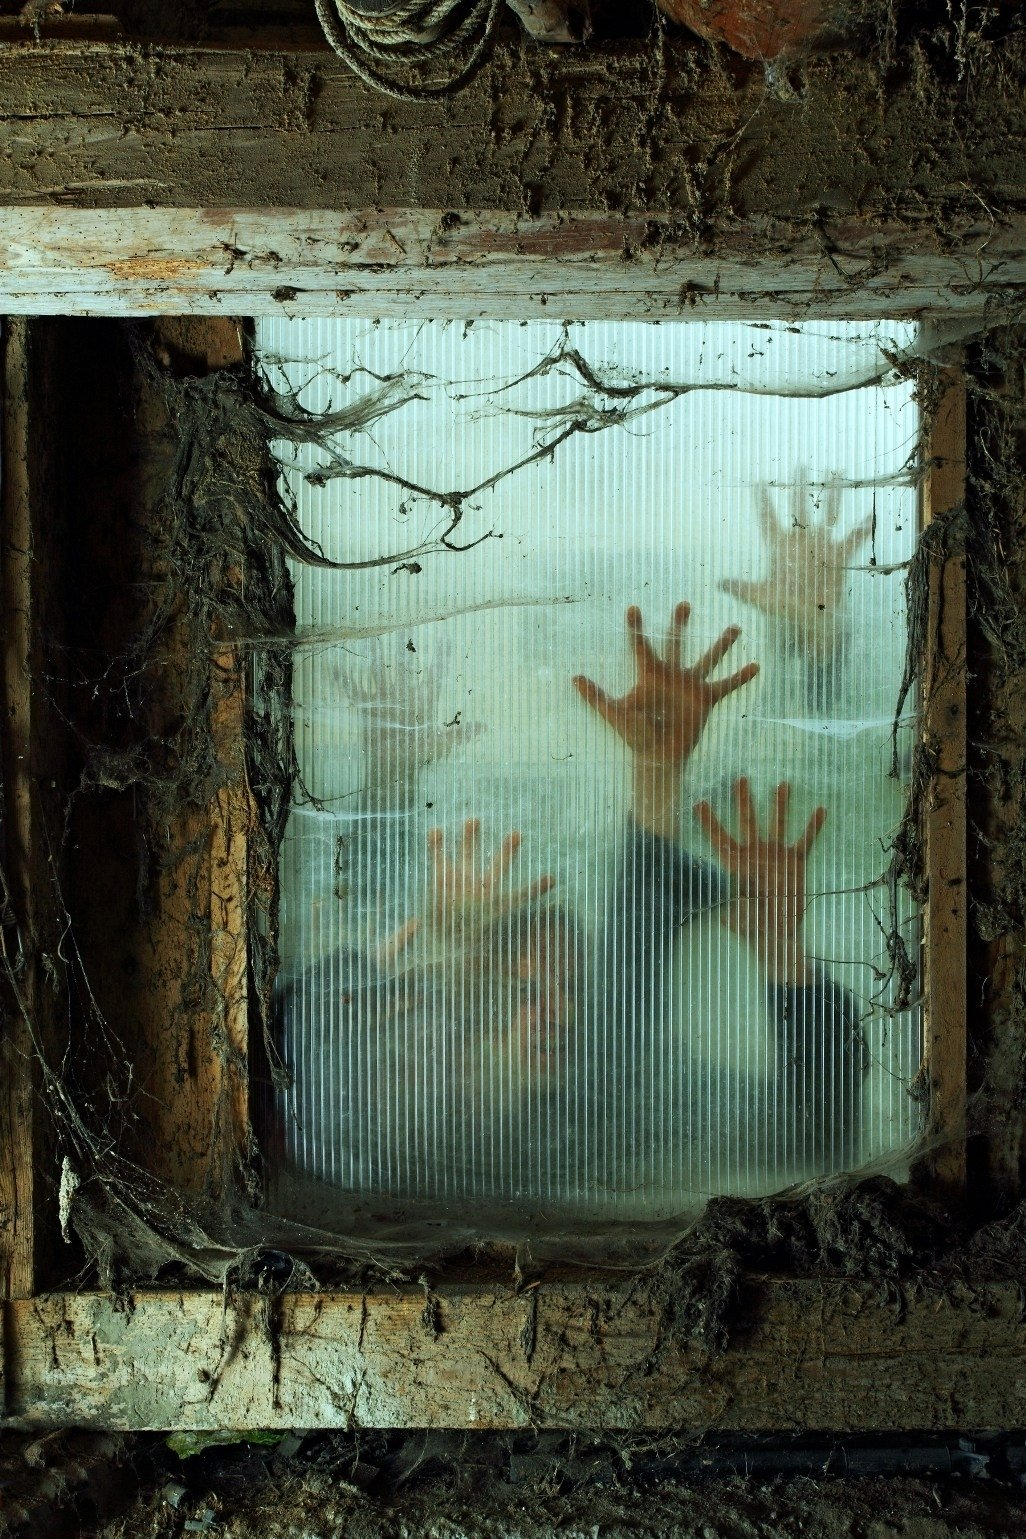 10 Attractive Haunted House Ideas For Halloween diy haunted house props decorations halloween ideas budget bodies 2020